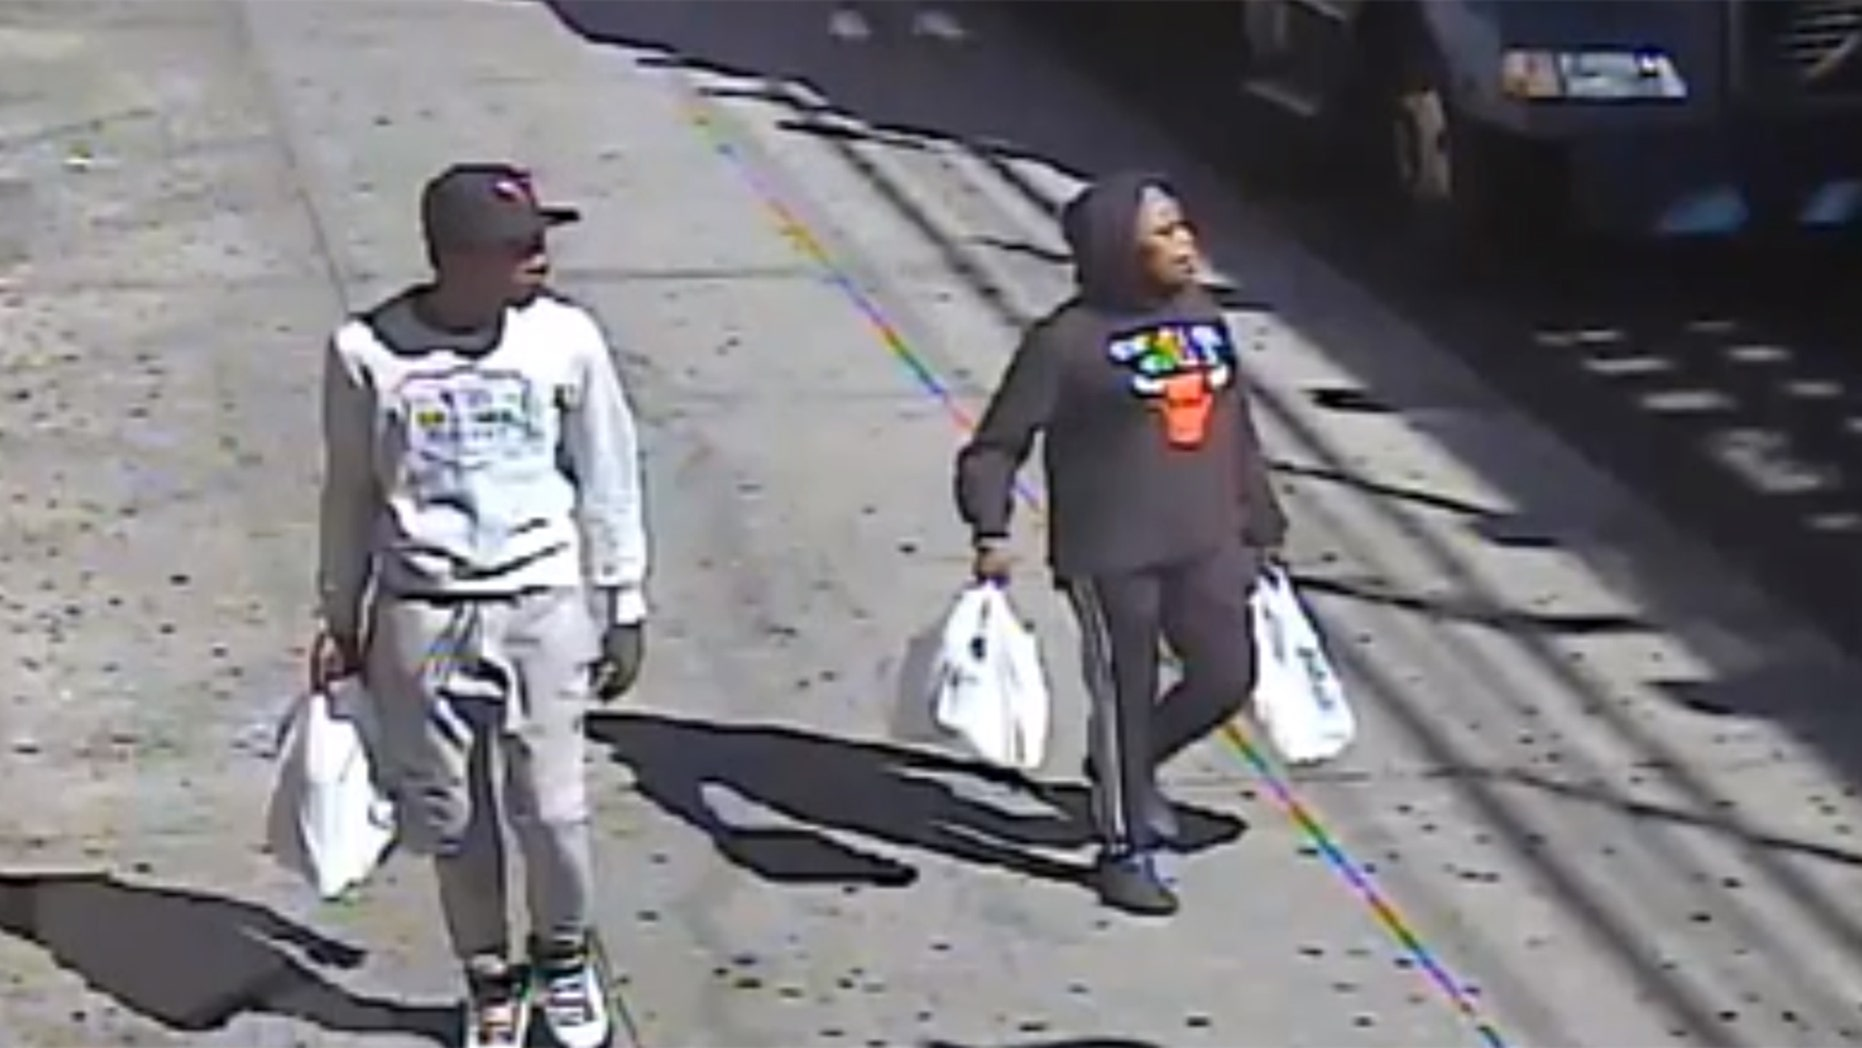 Police released surveillance footage of the duo in connection with the Bronx beating.